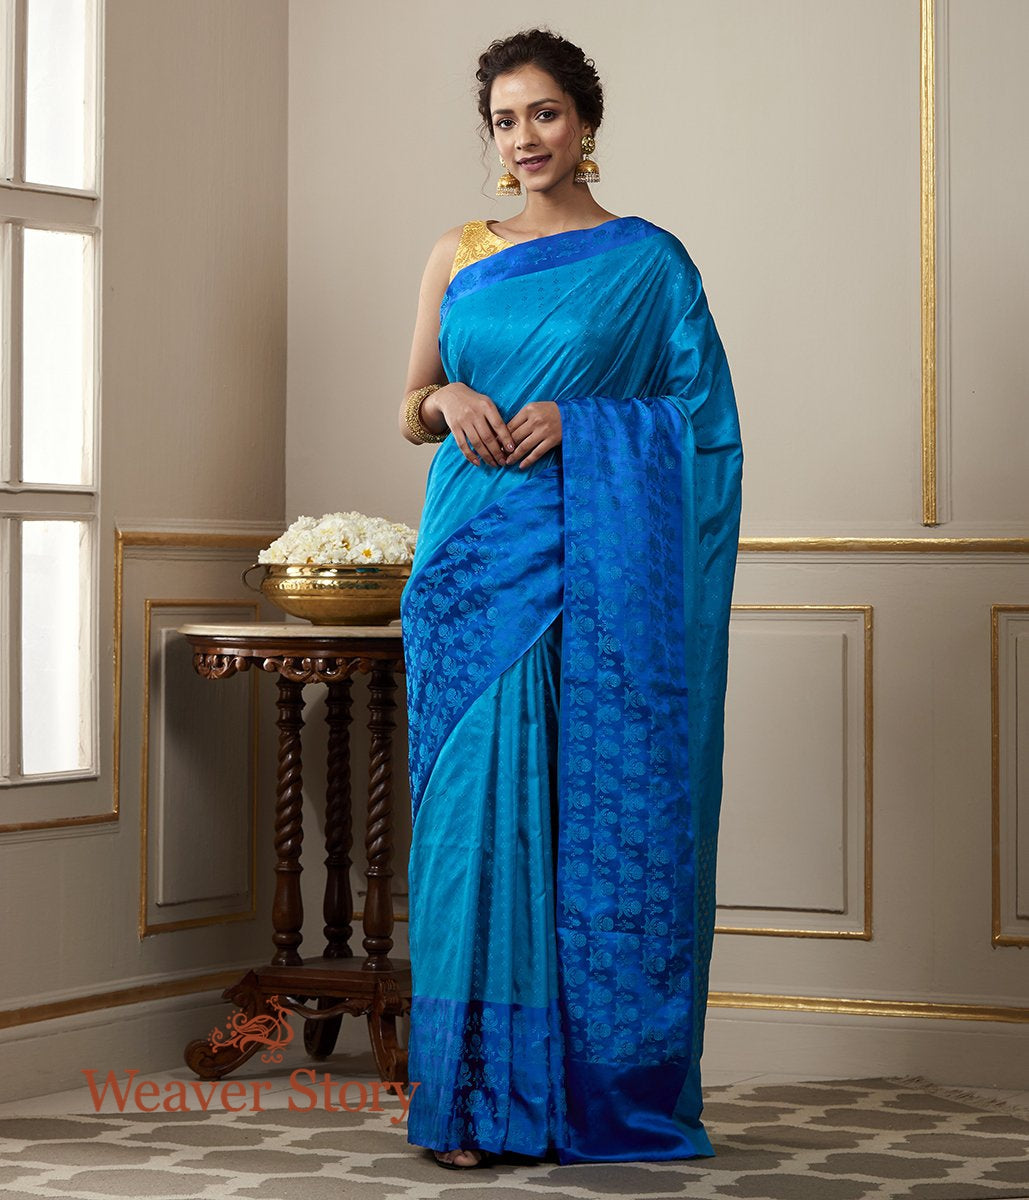 Handwoven Turquoise Blue Banarsi Tanchoi with a Royal Blue Reshmi Border